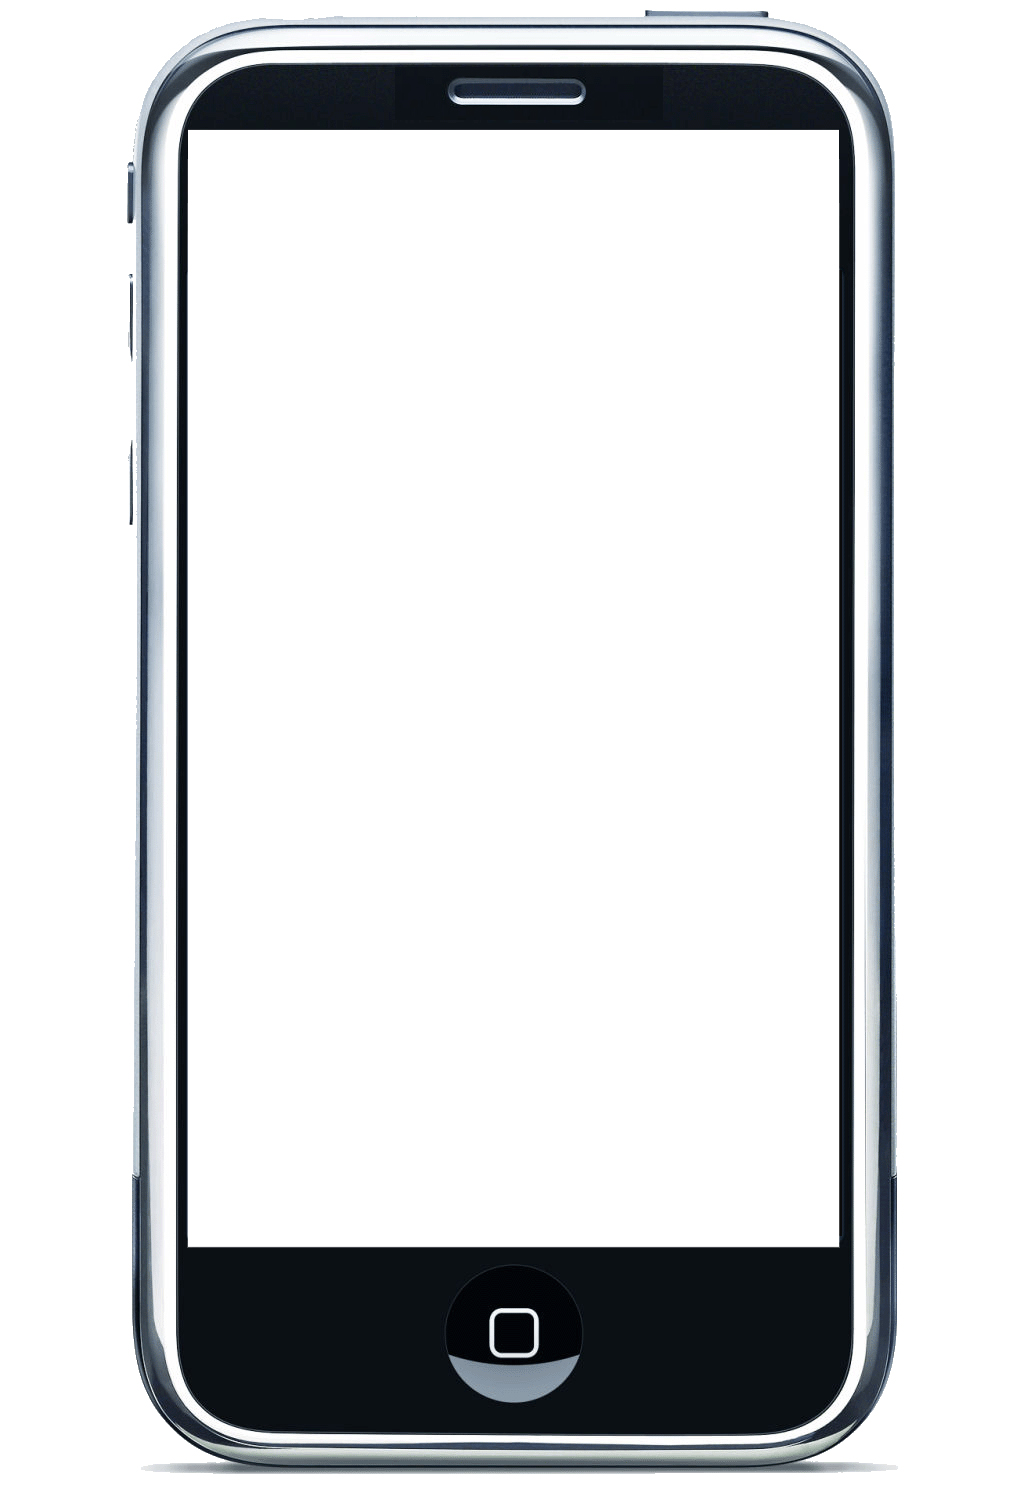 Free iphone clipart clip art black and white stock Free Iphone Cliparts, Download Free Clip Art, Free Clip Art on ... clip art black and white stock